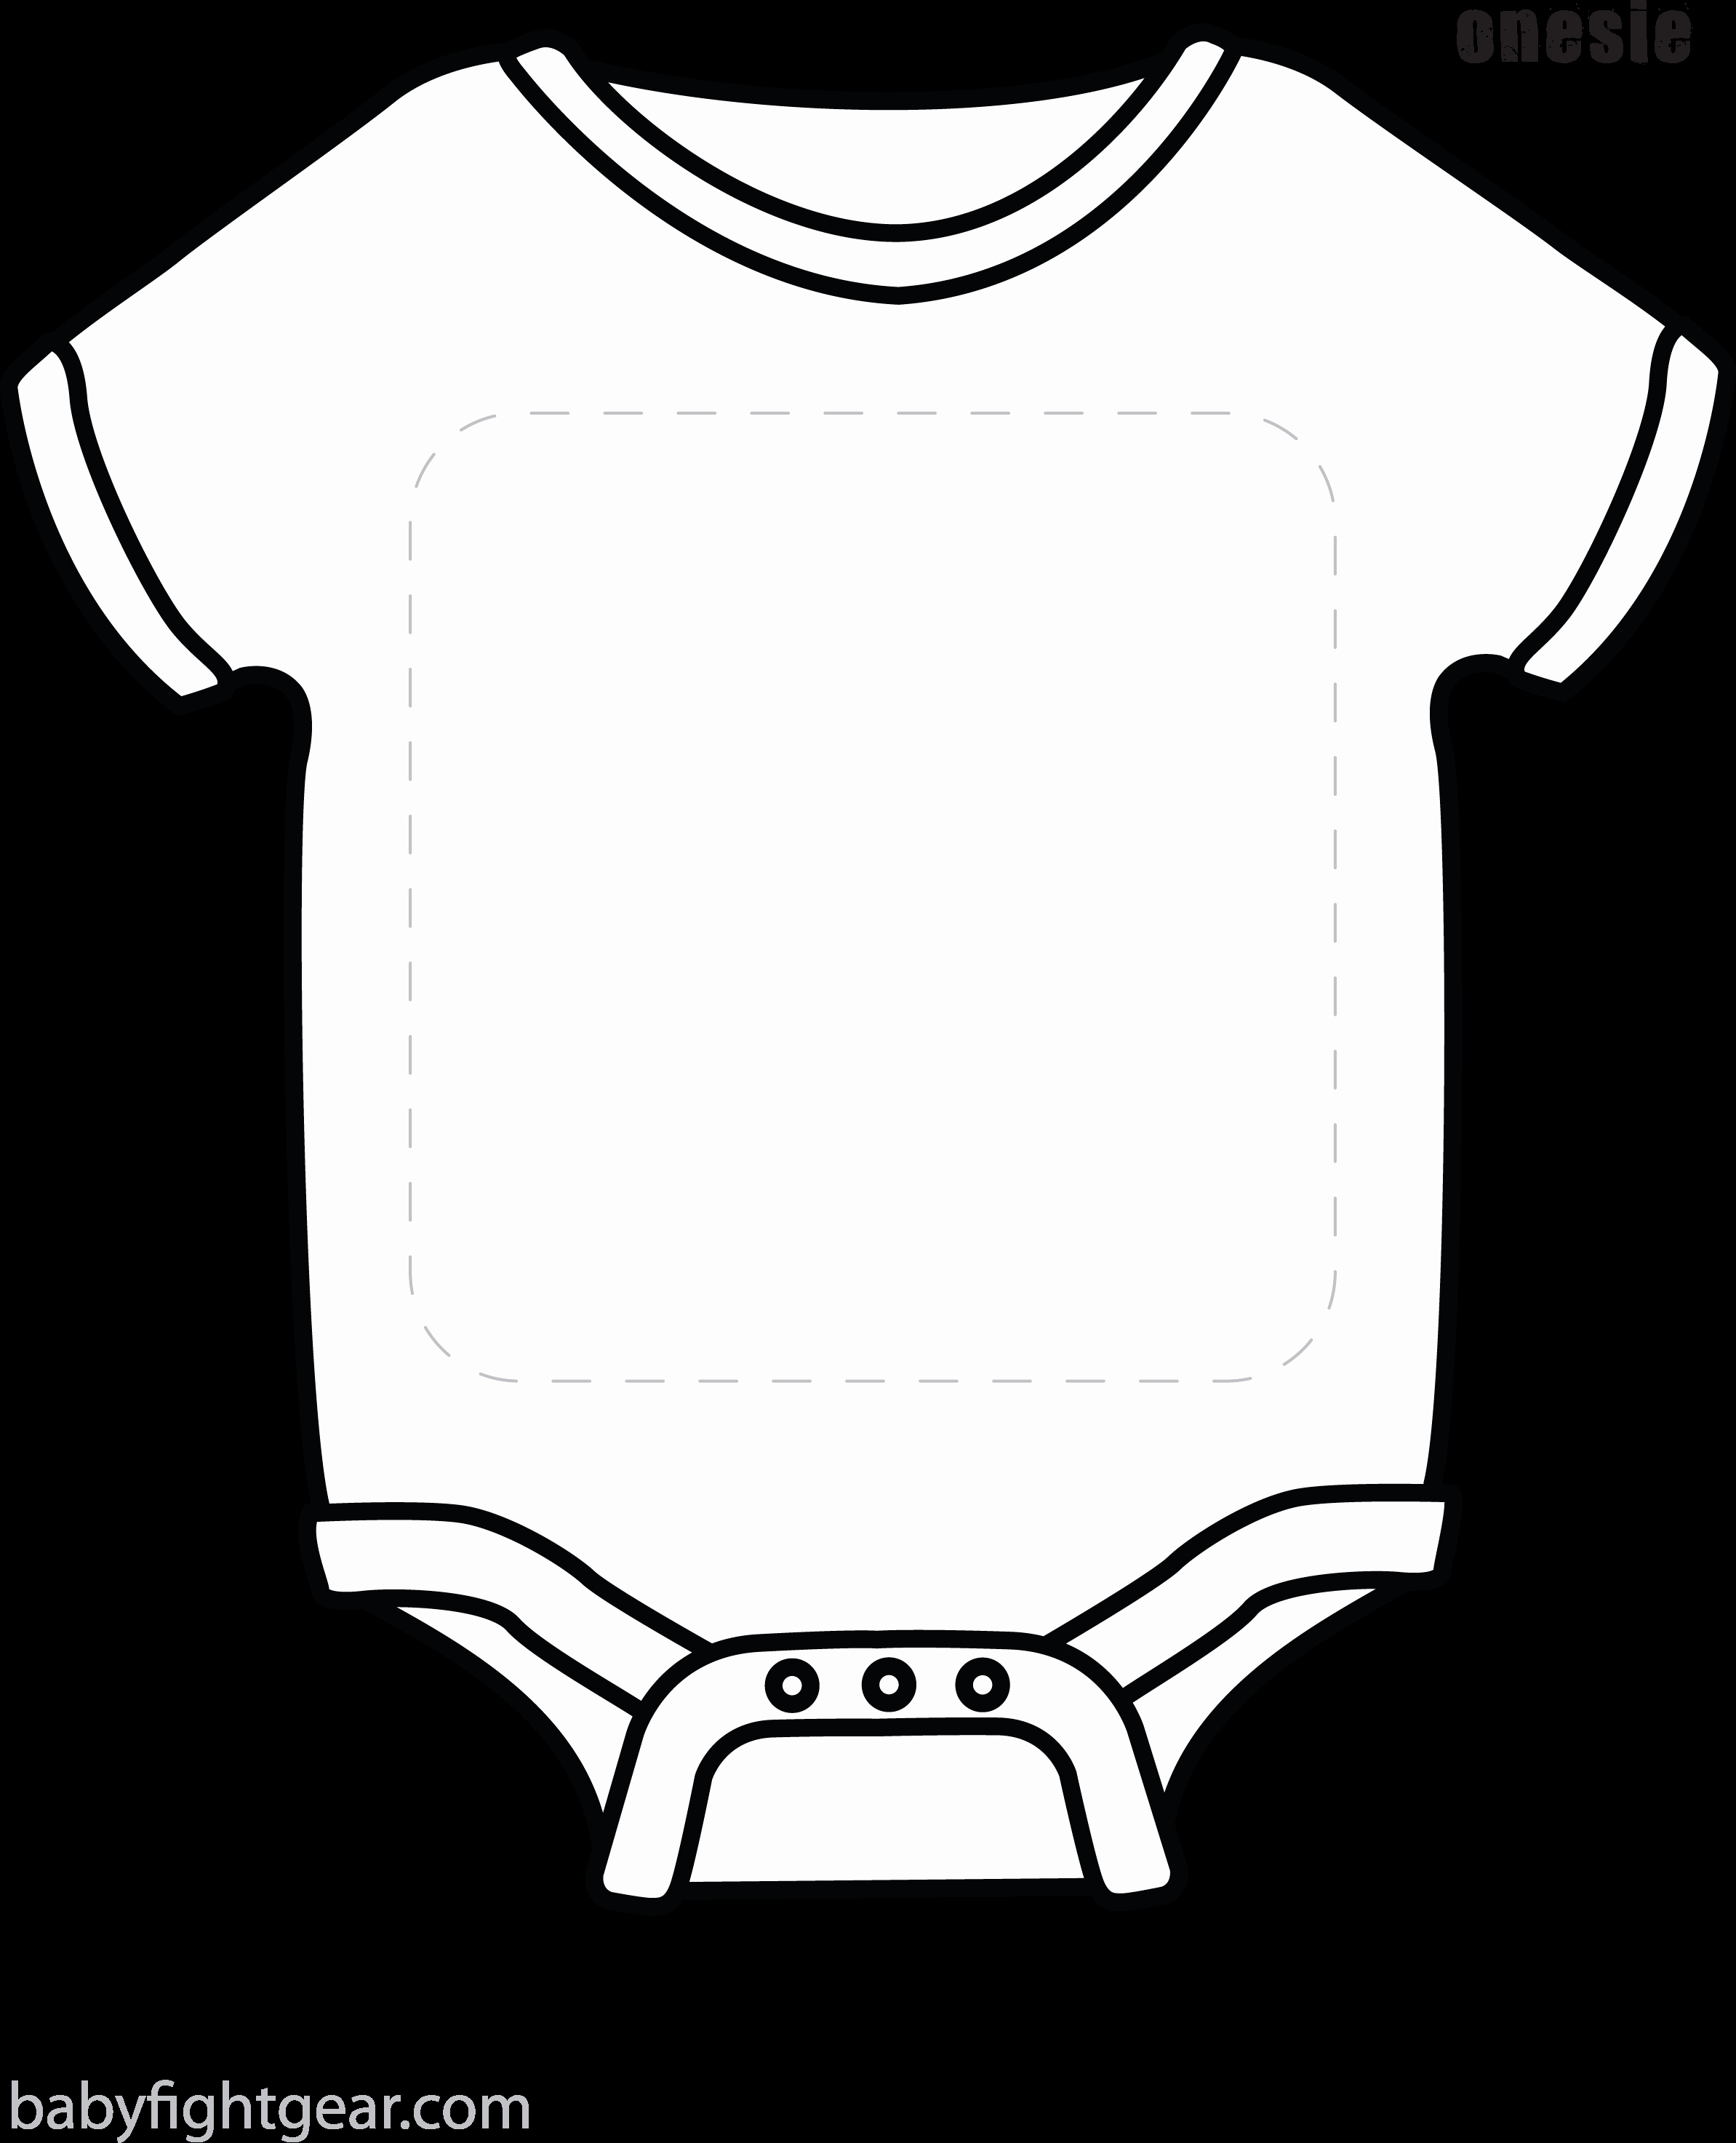 Onesies Template Printable Free Lovely Create the First Design for Chael sonnen S Signature Line